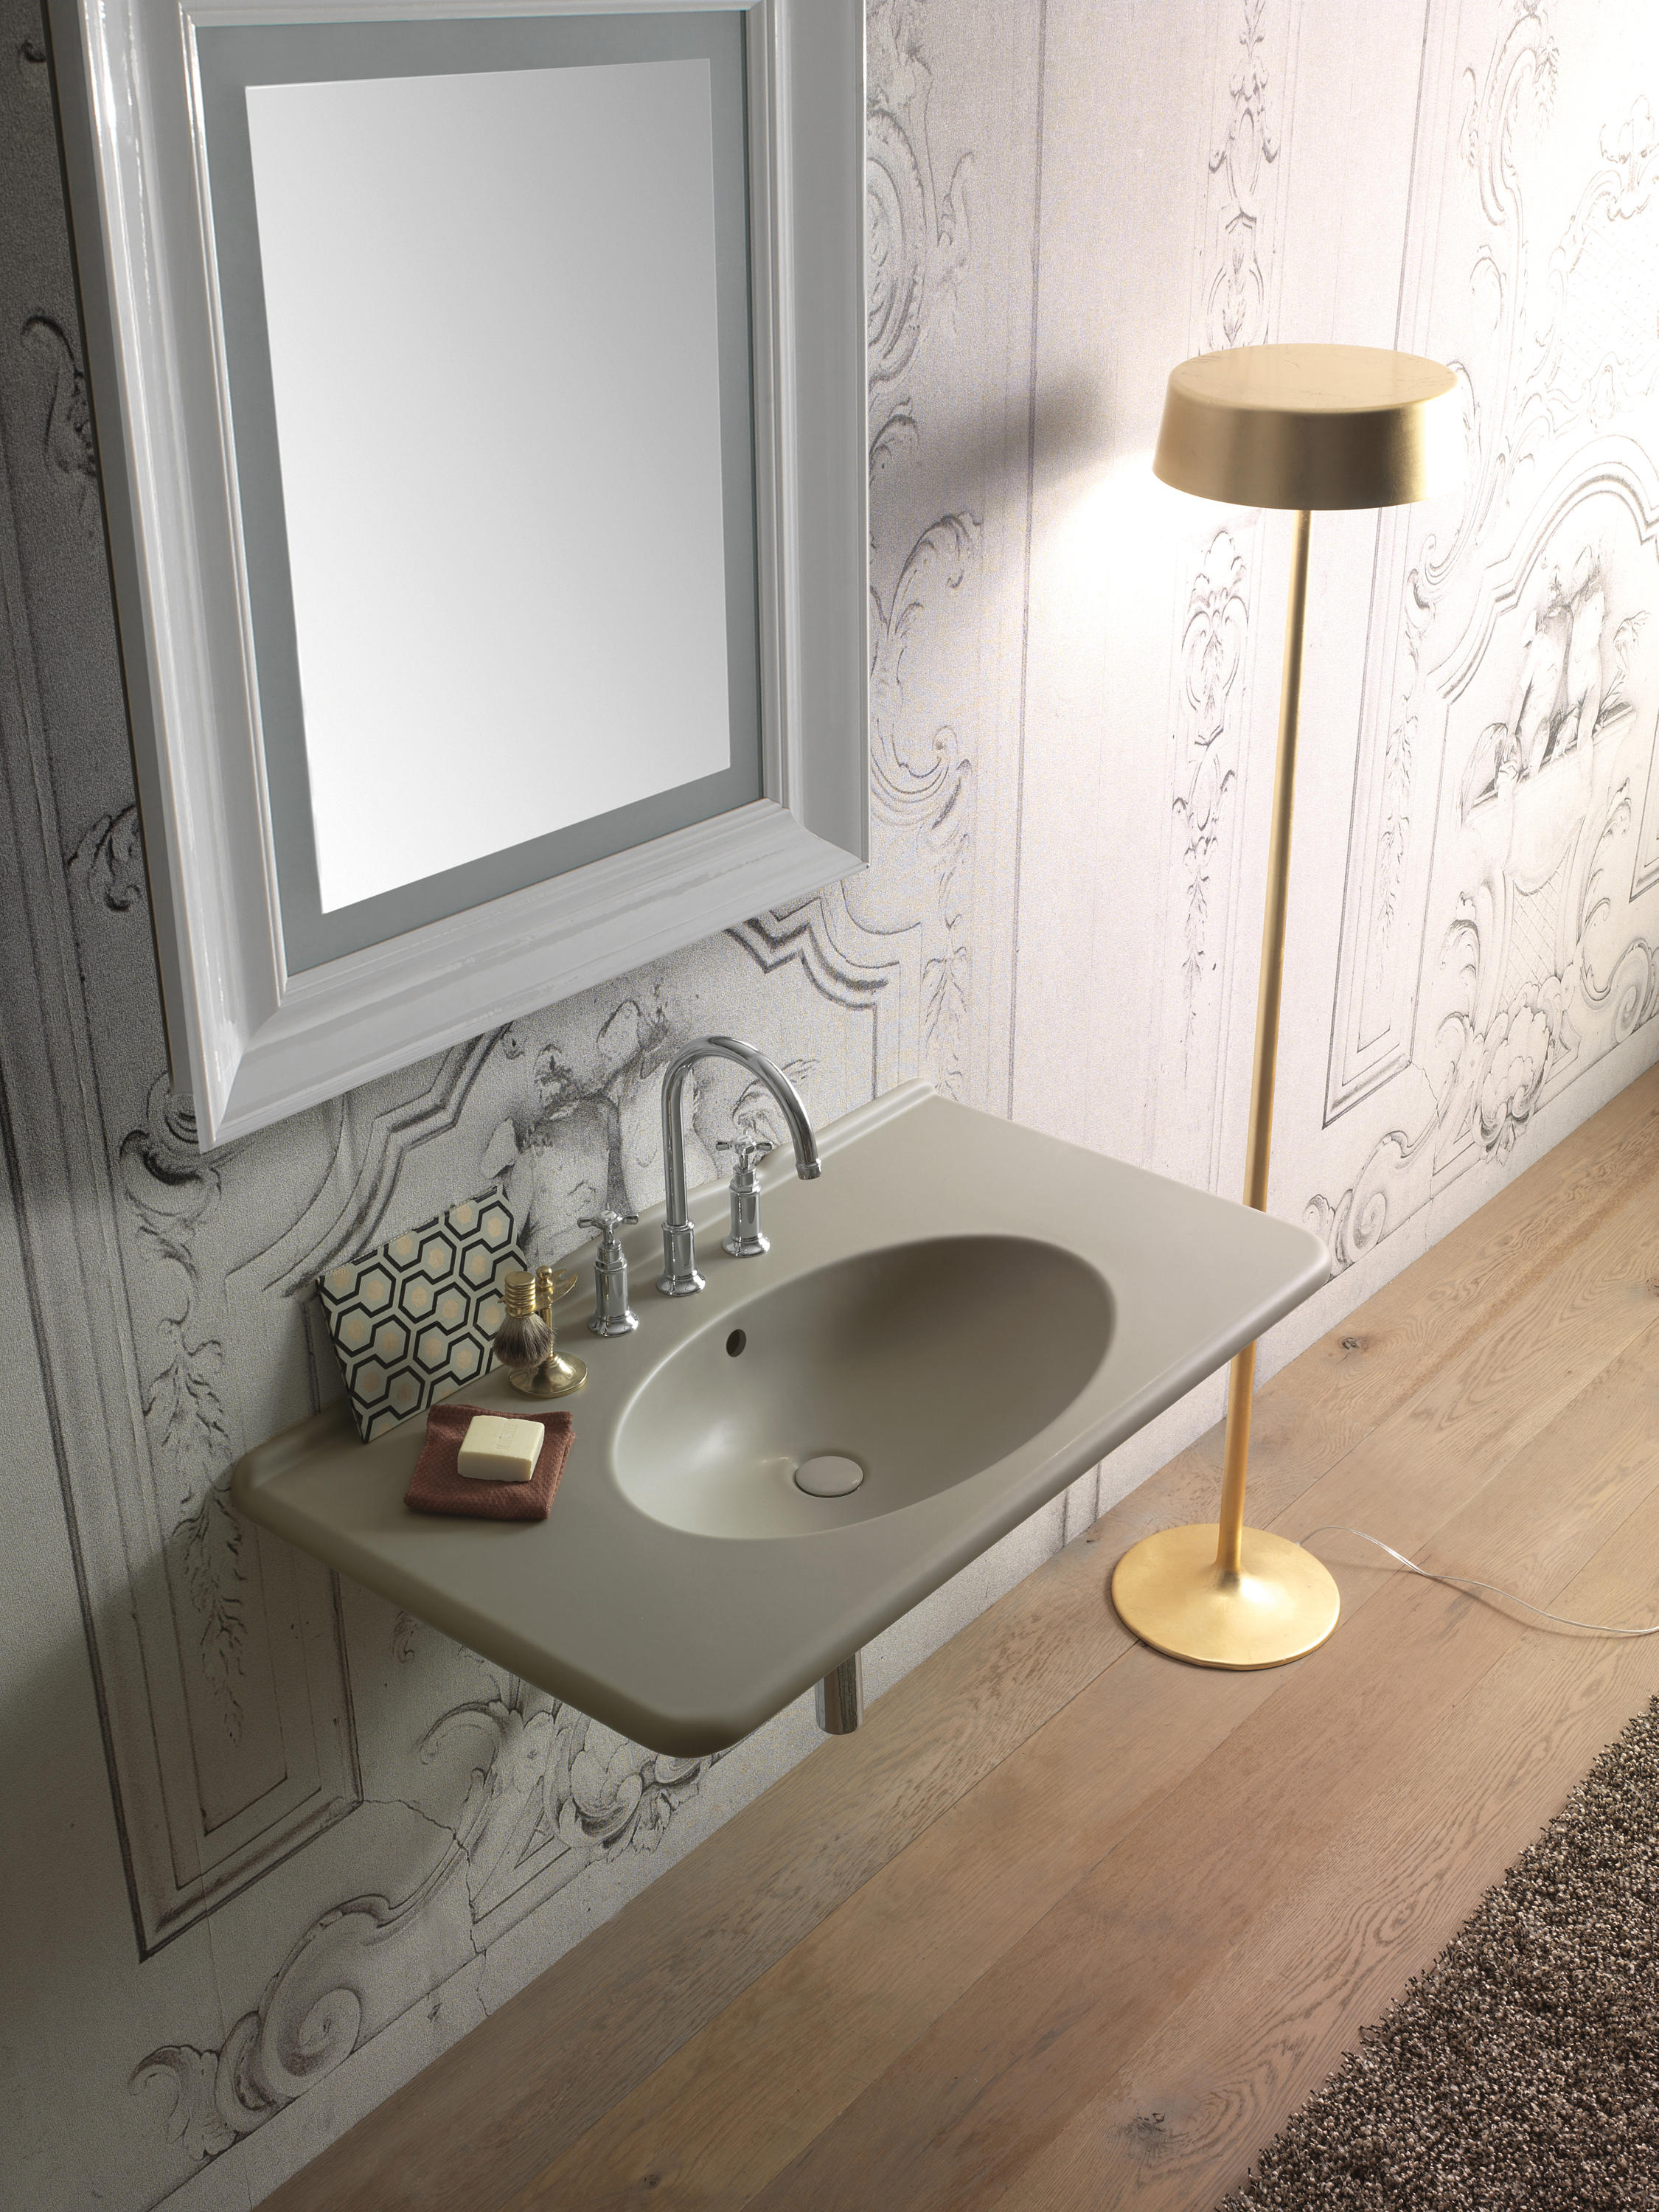 BAGNO DI COLORE BASIN - Wash basins from Globo | Architonic